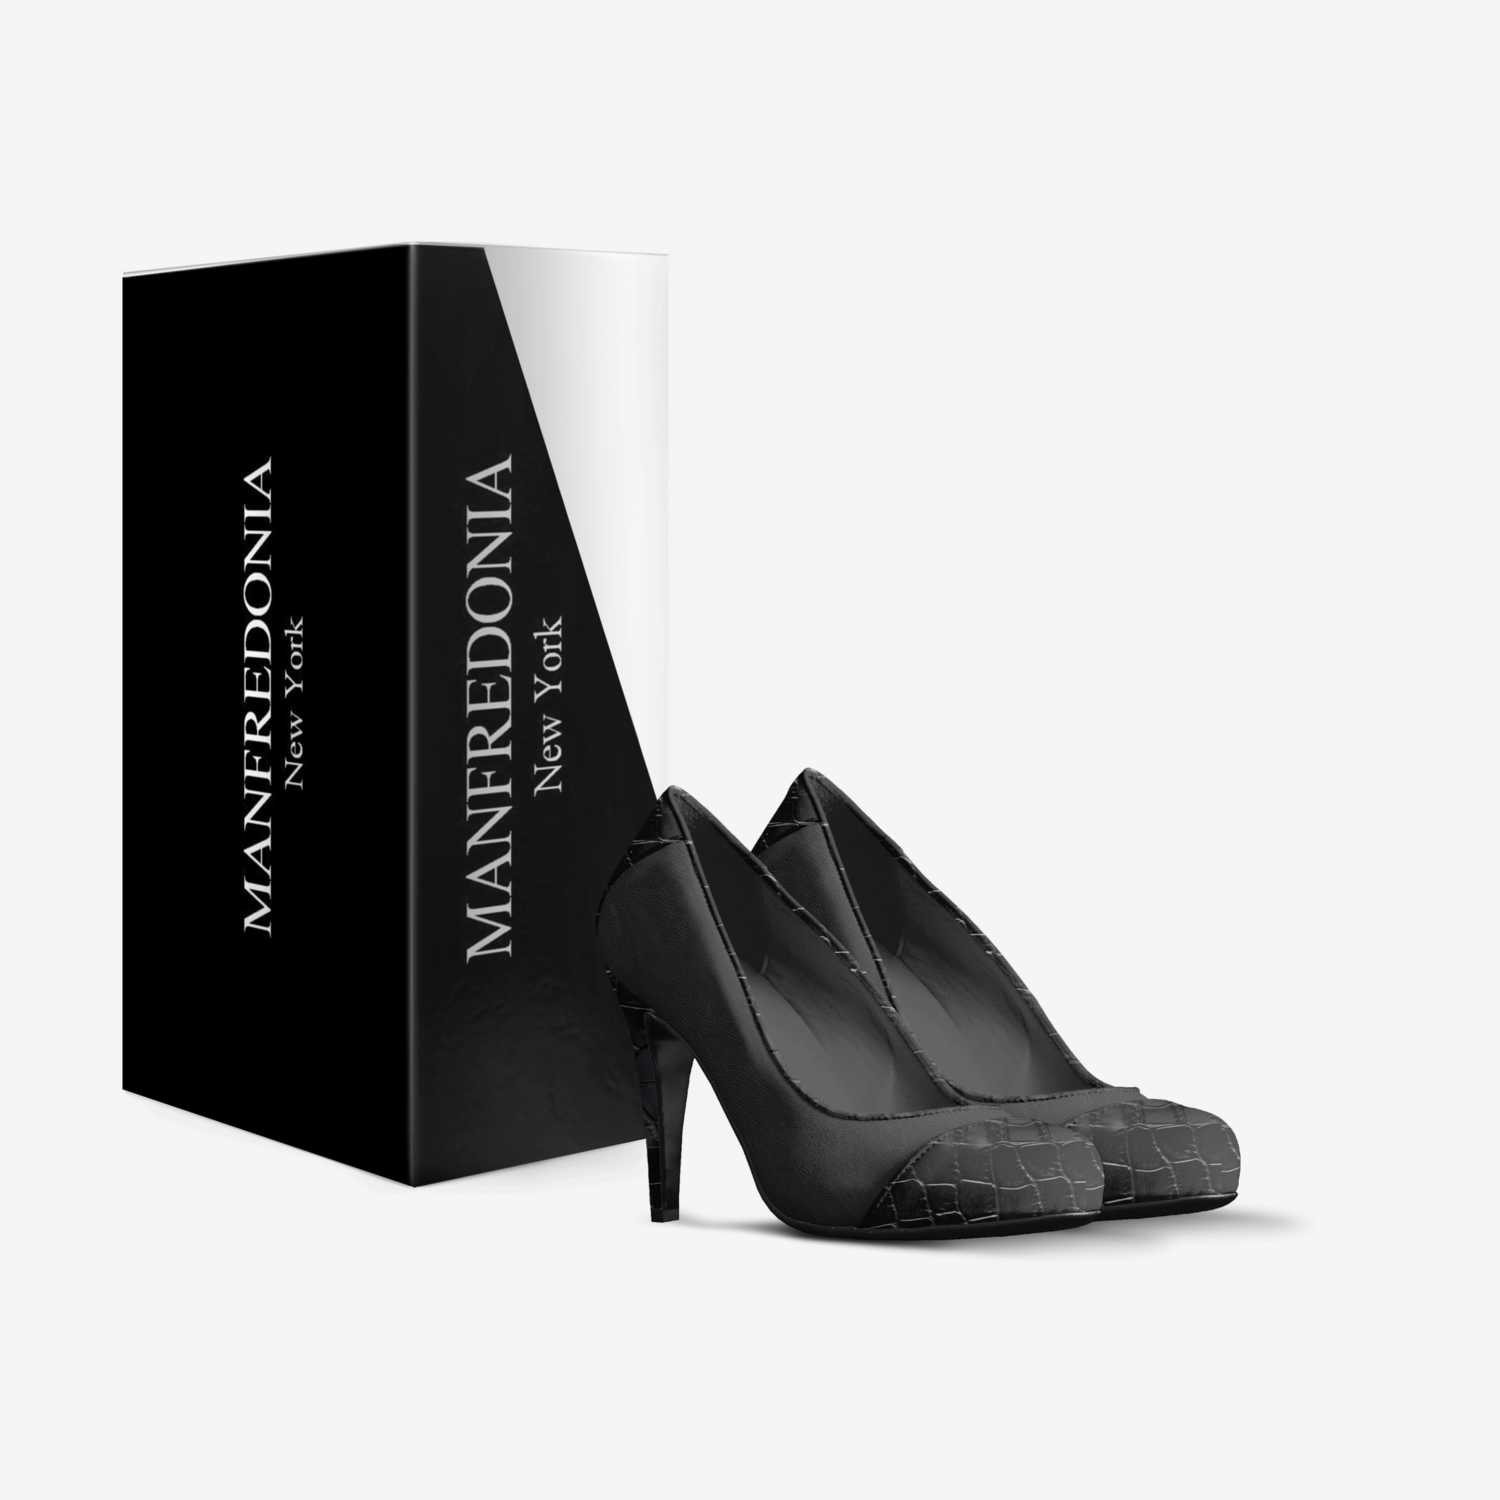 MANFREDONIA custom made in Italy shoes by Anthony Manfredonia | Box view